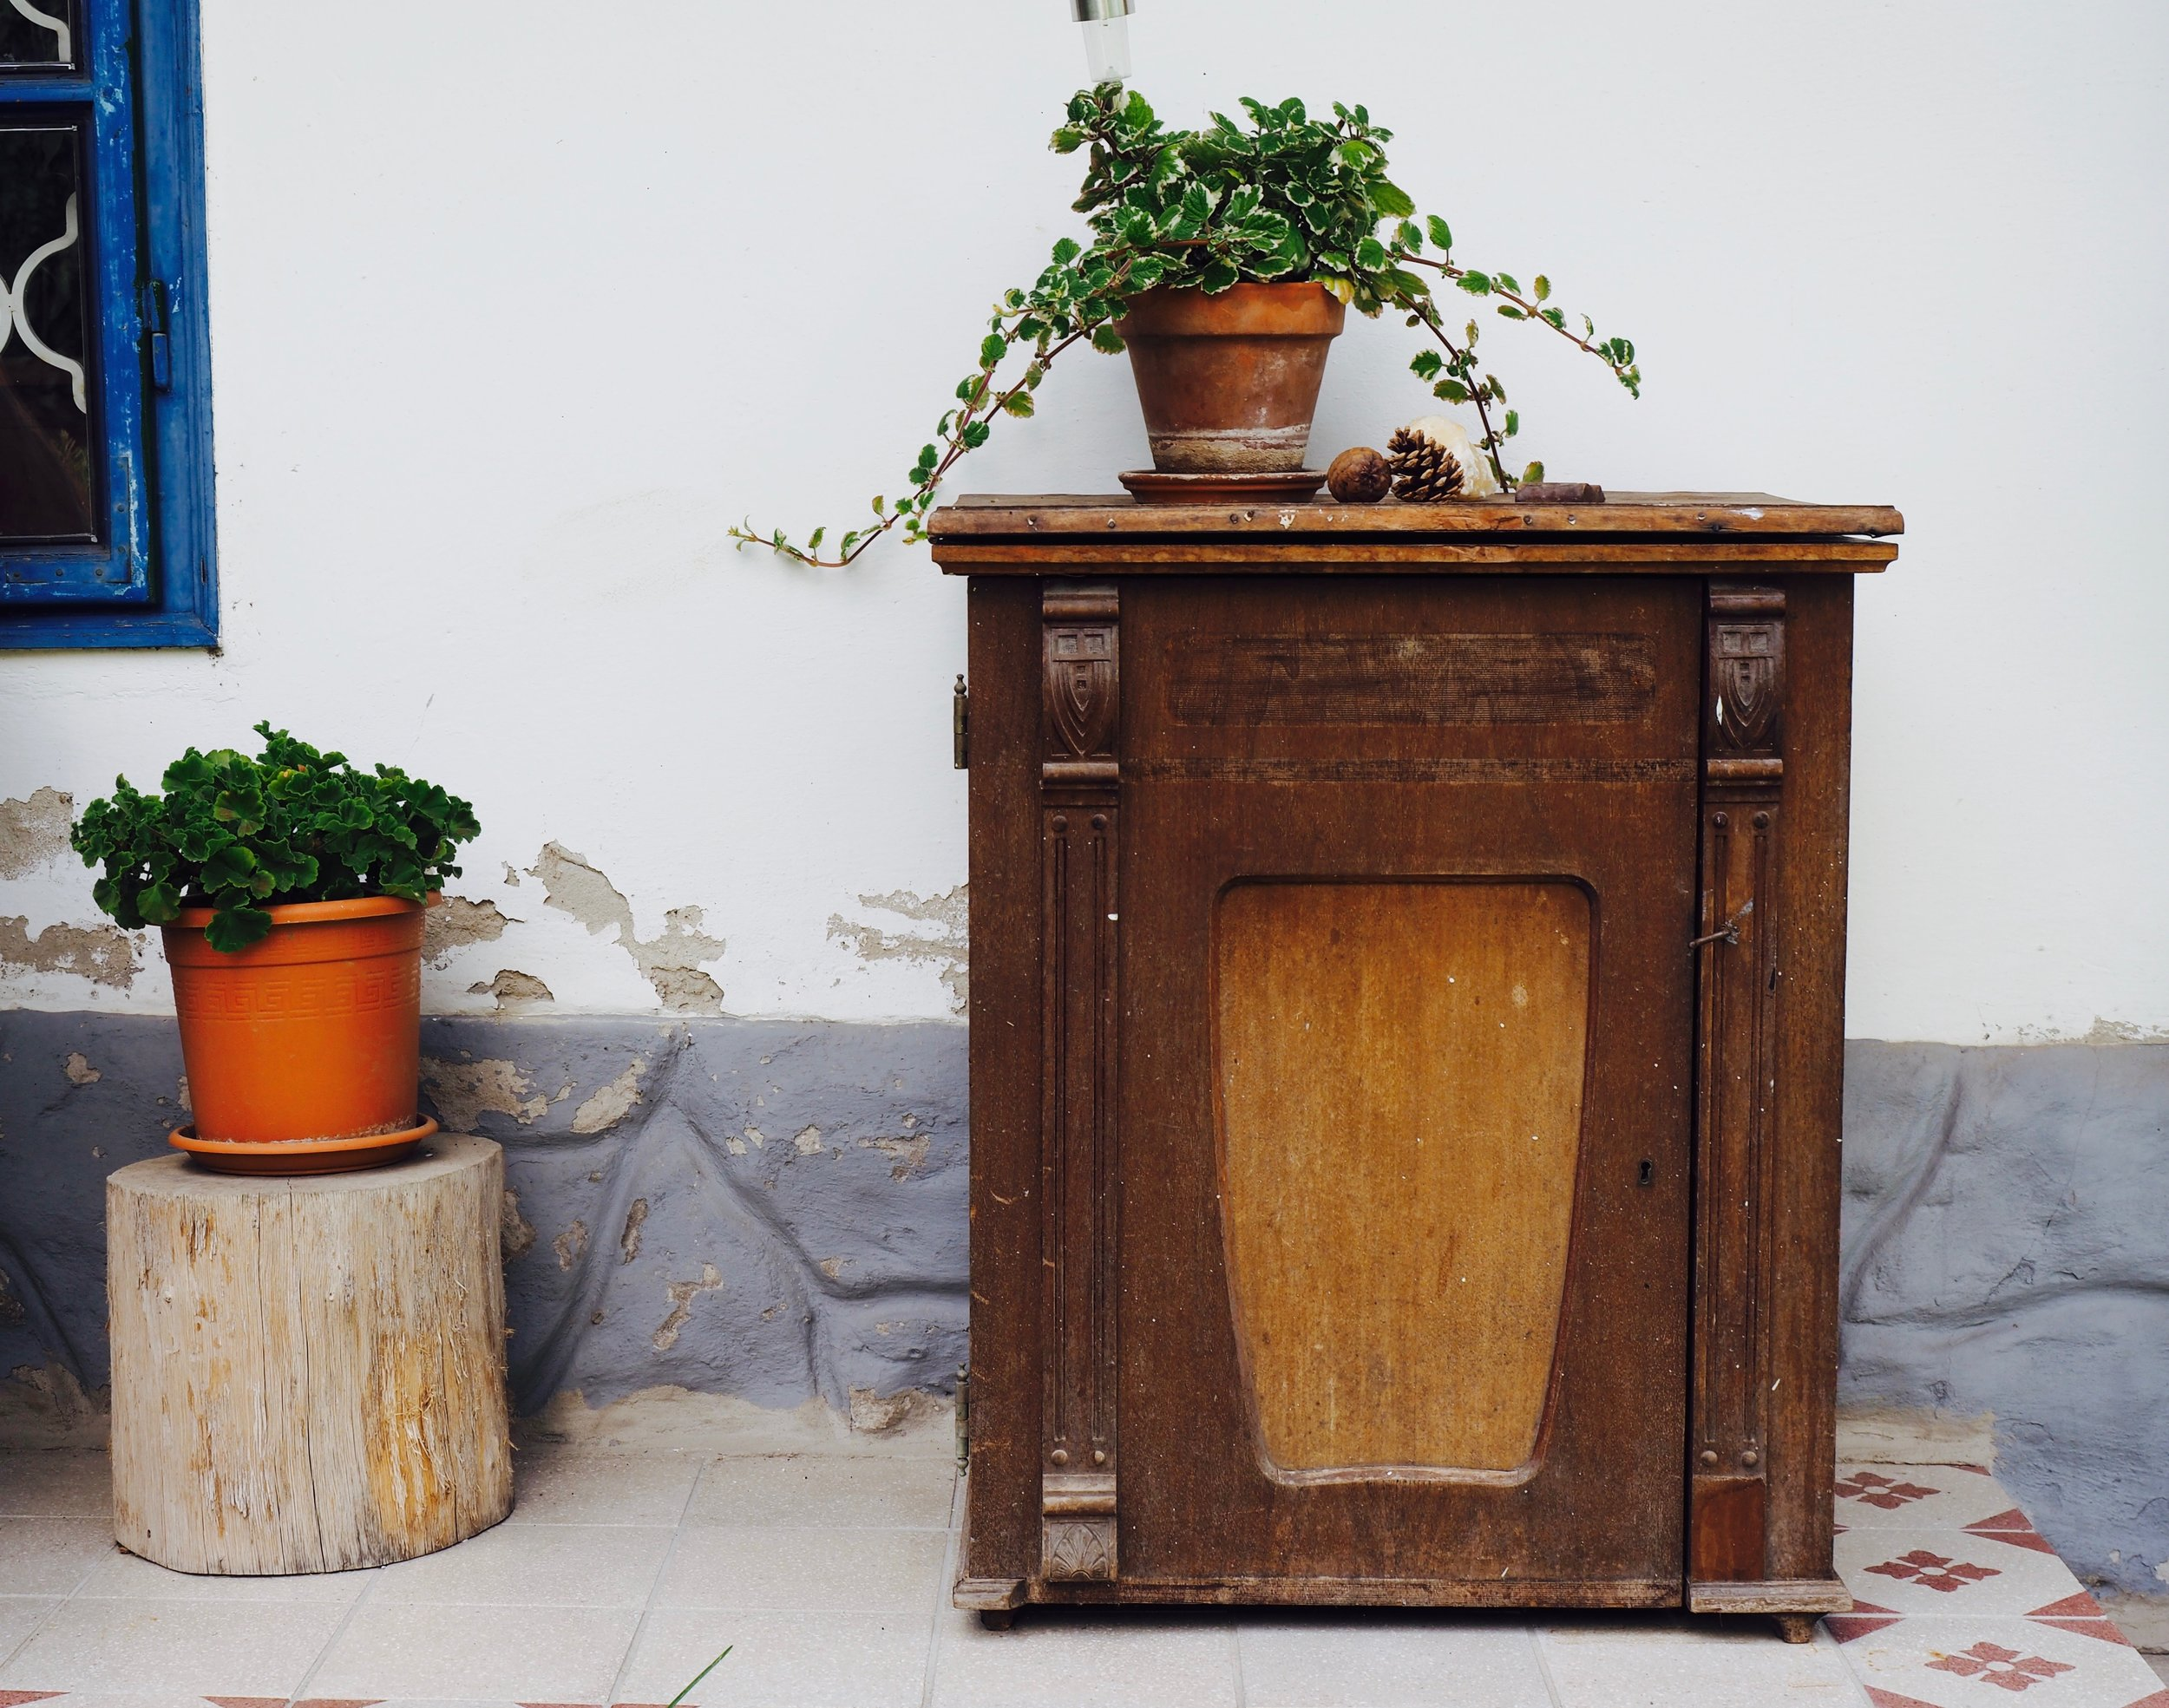 An ivy and a geranium look right at home on the log and the well-loved timber cabinet.